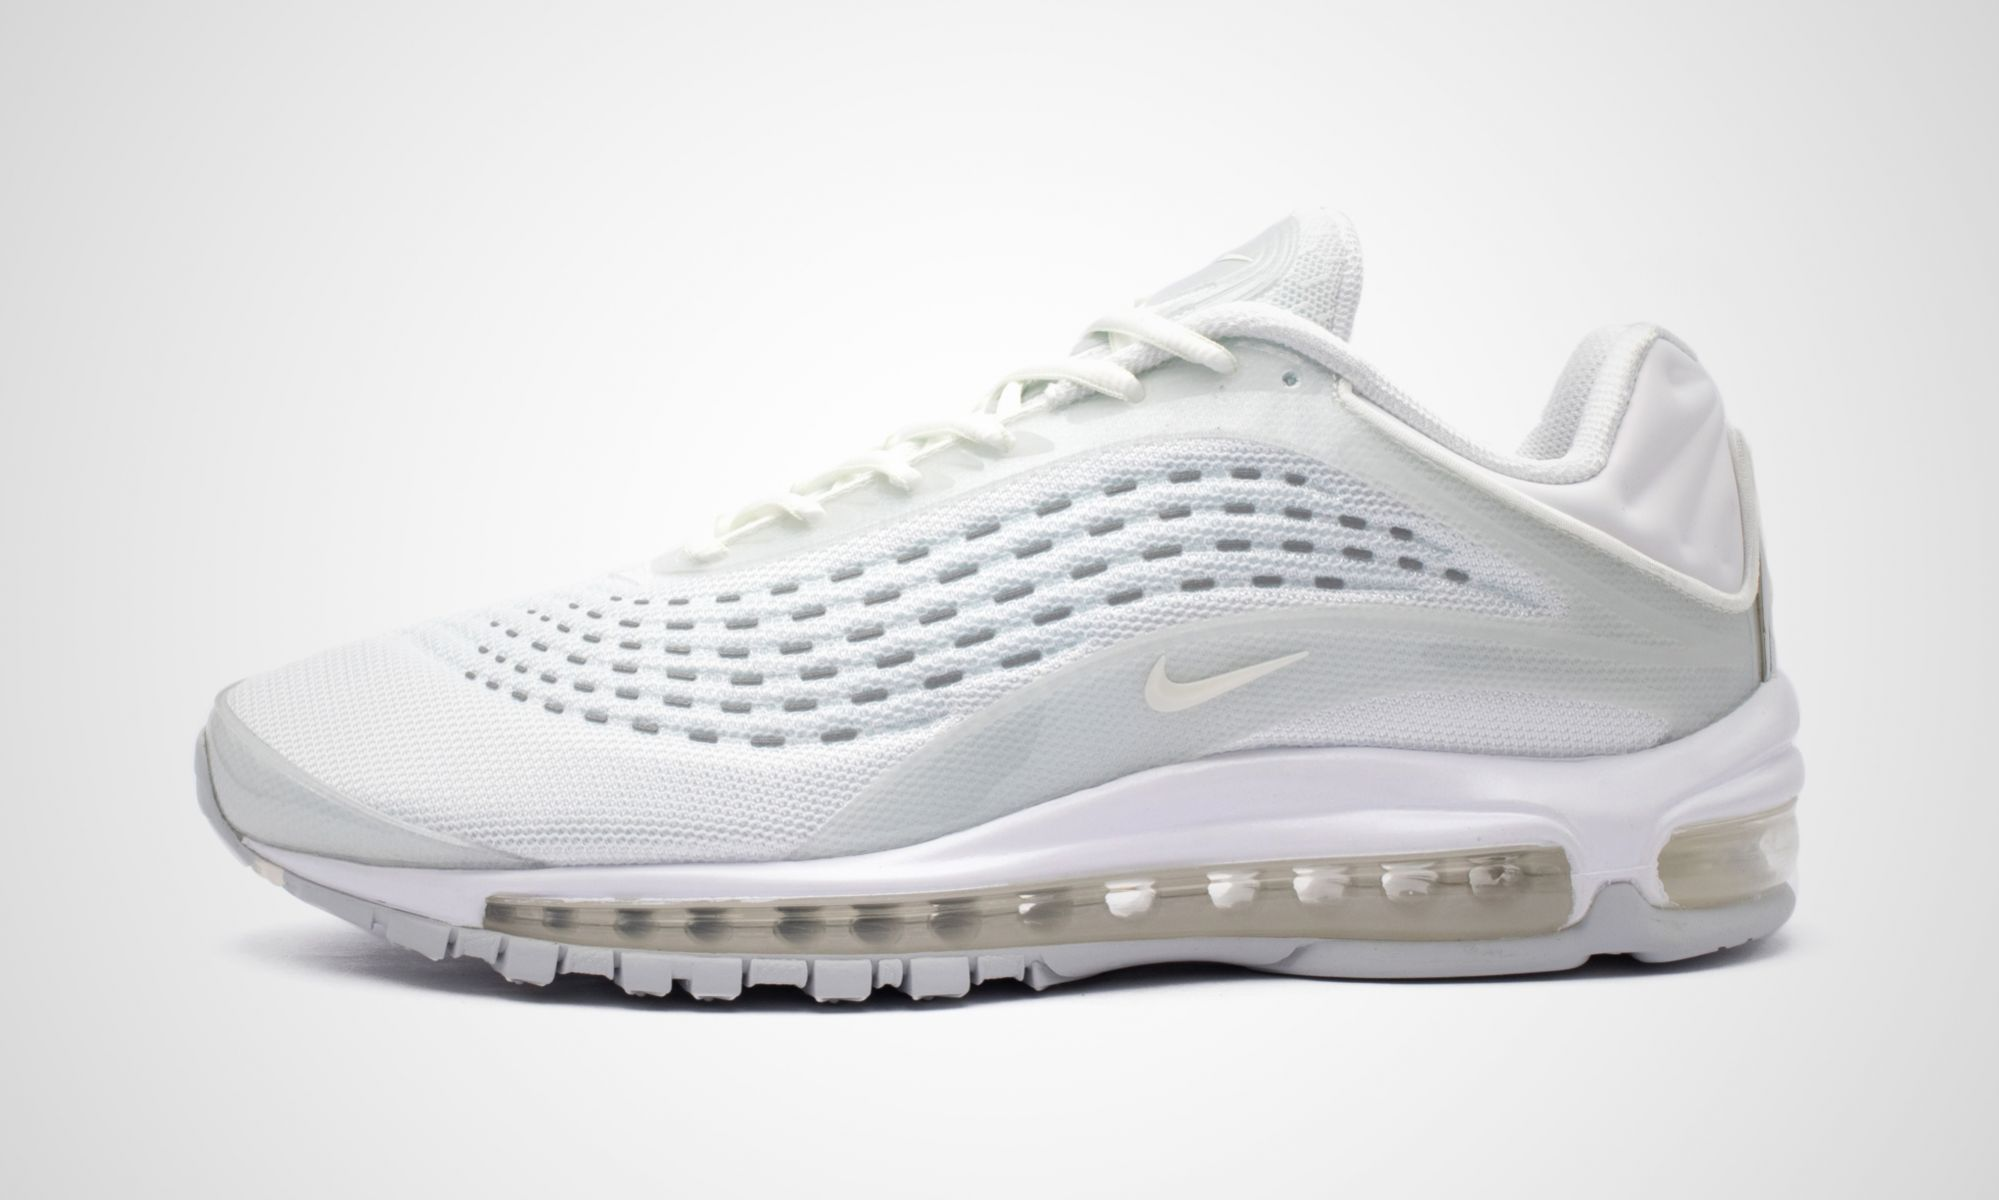 Nike Air Max Deluxe All White